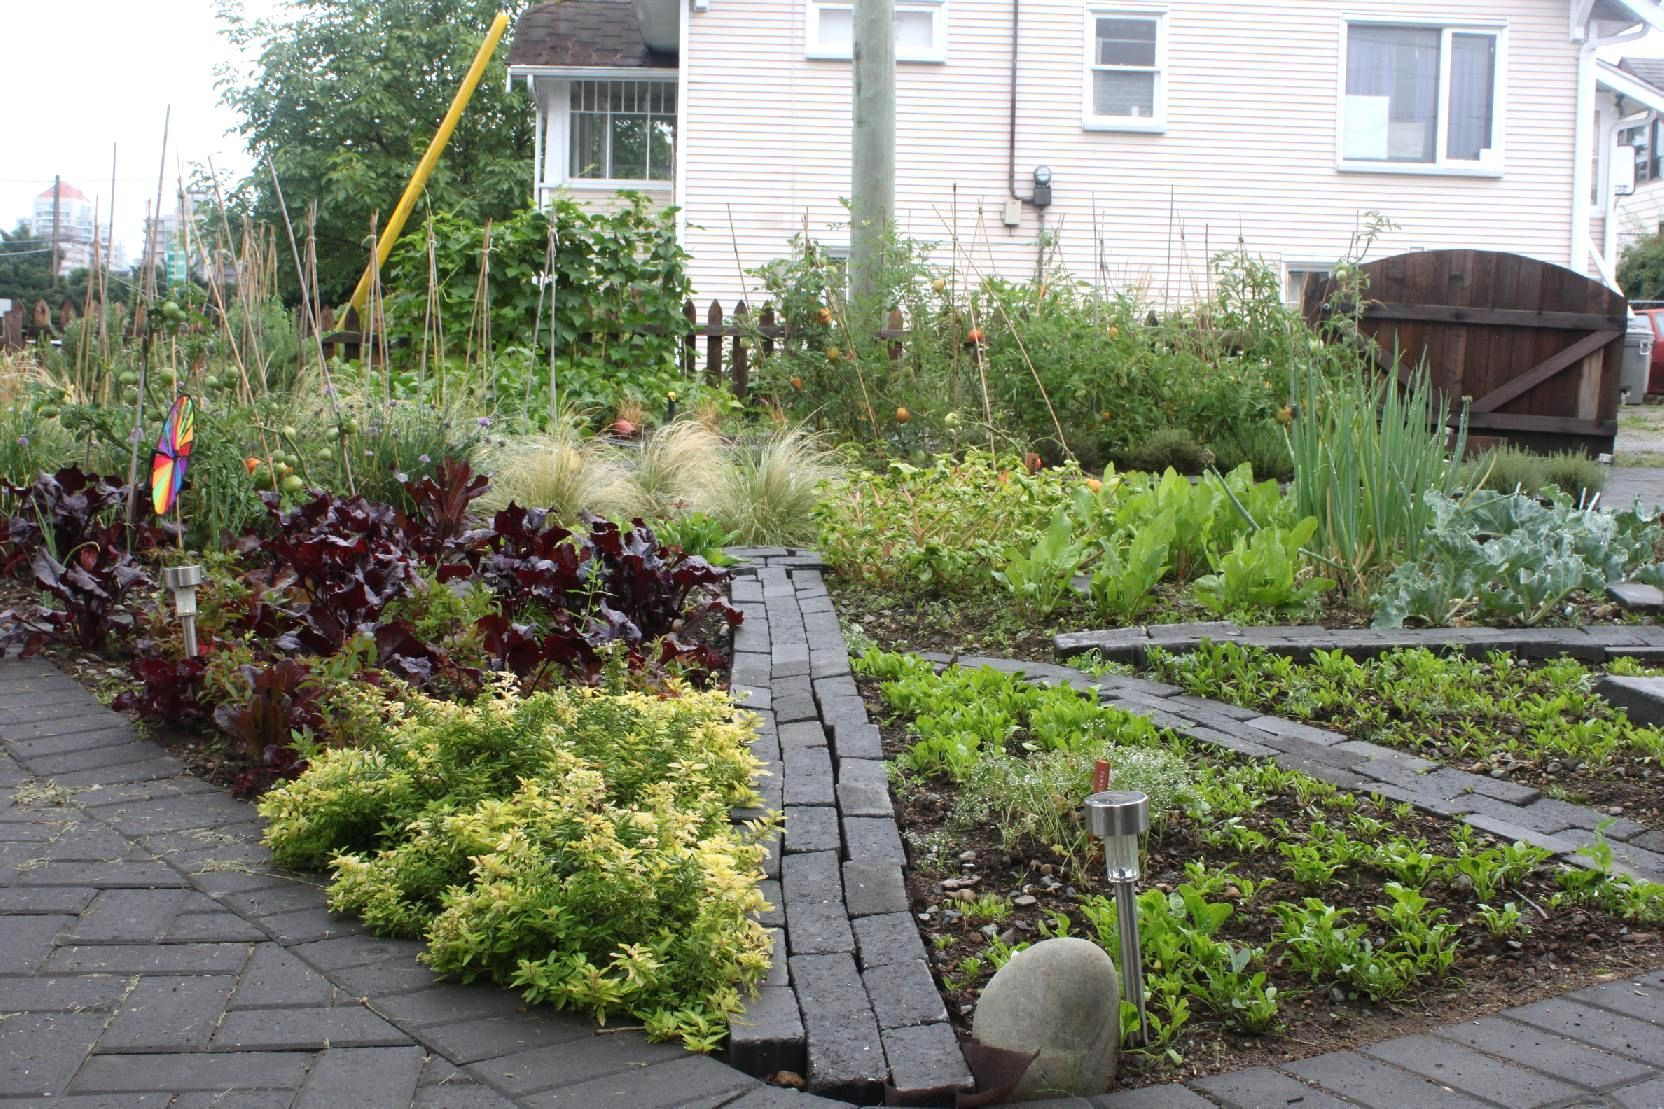 planning a front yard vegetable garden innovative front yard vegetable garden design - Front Yard Vegetable Garden Ideas